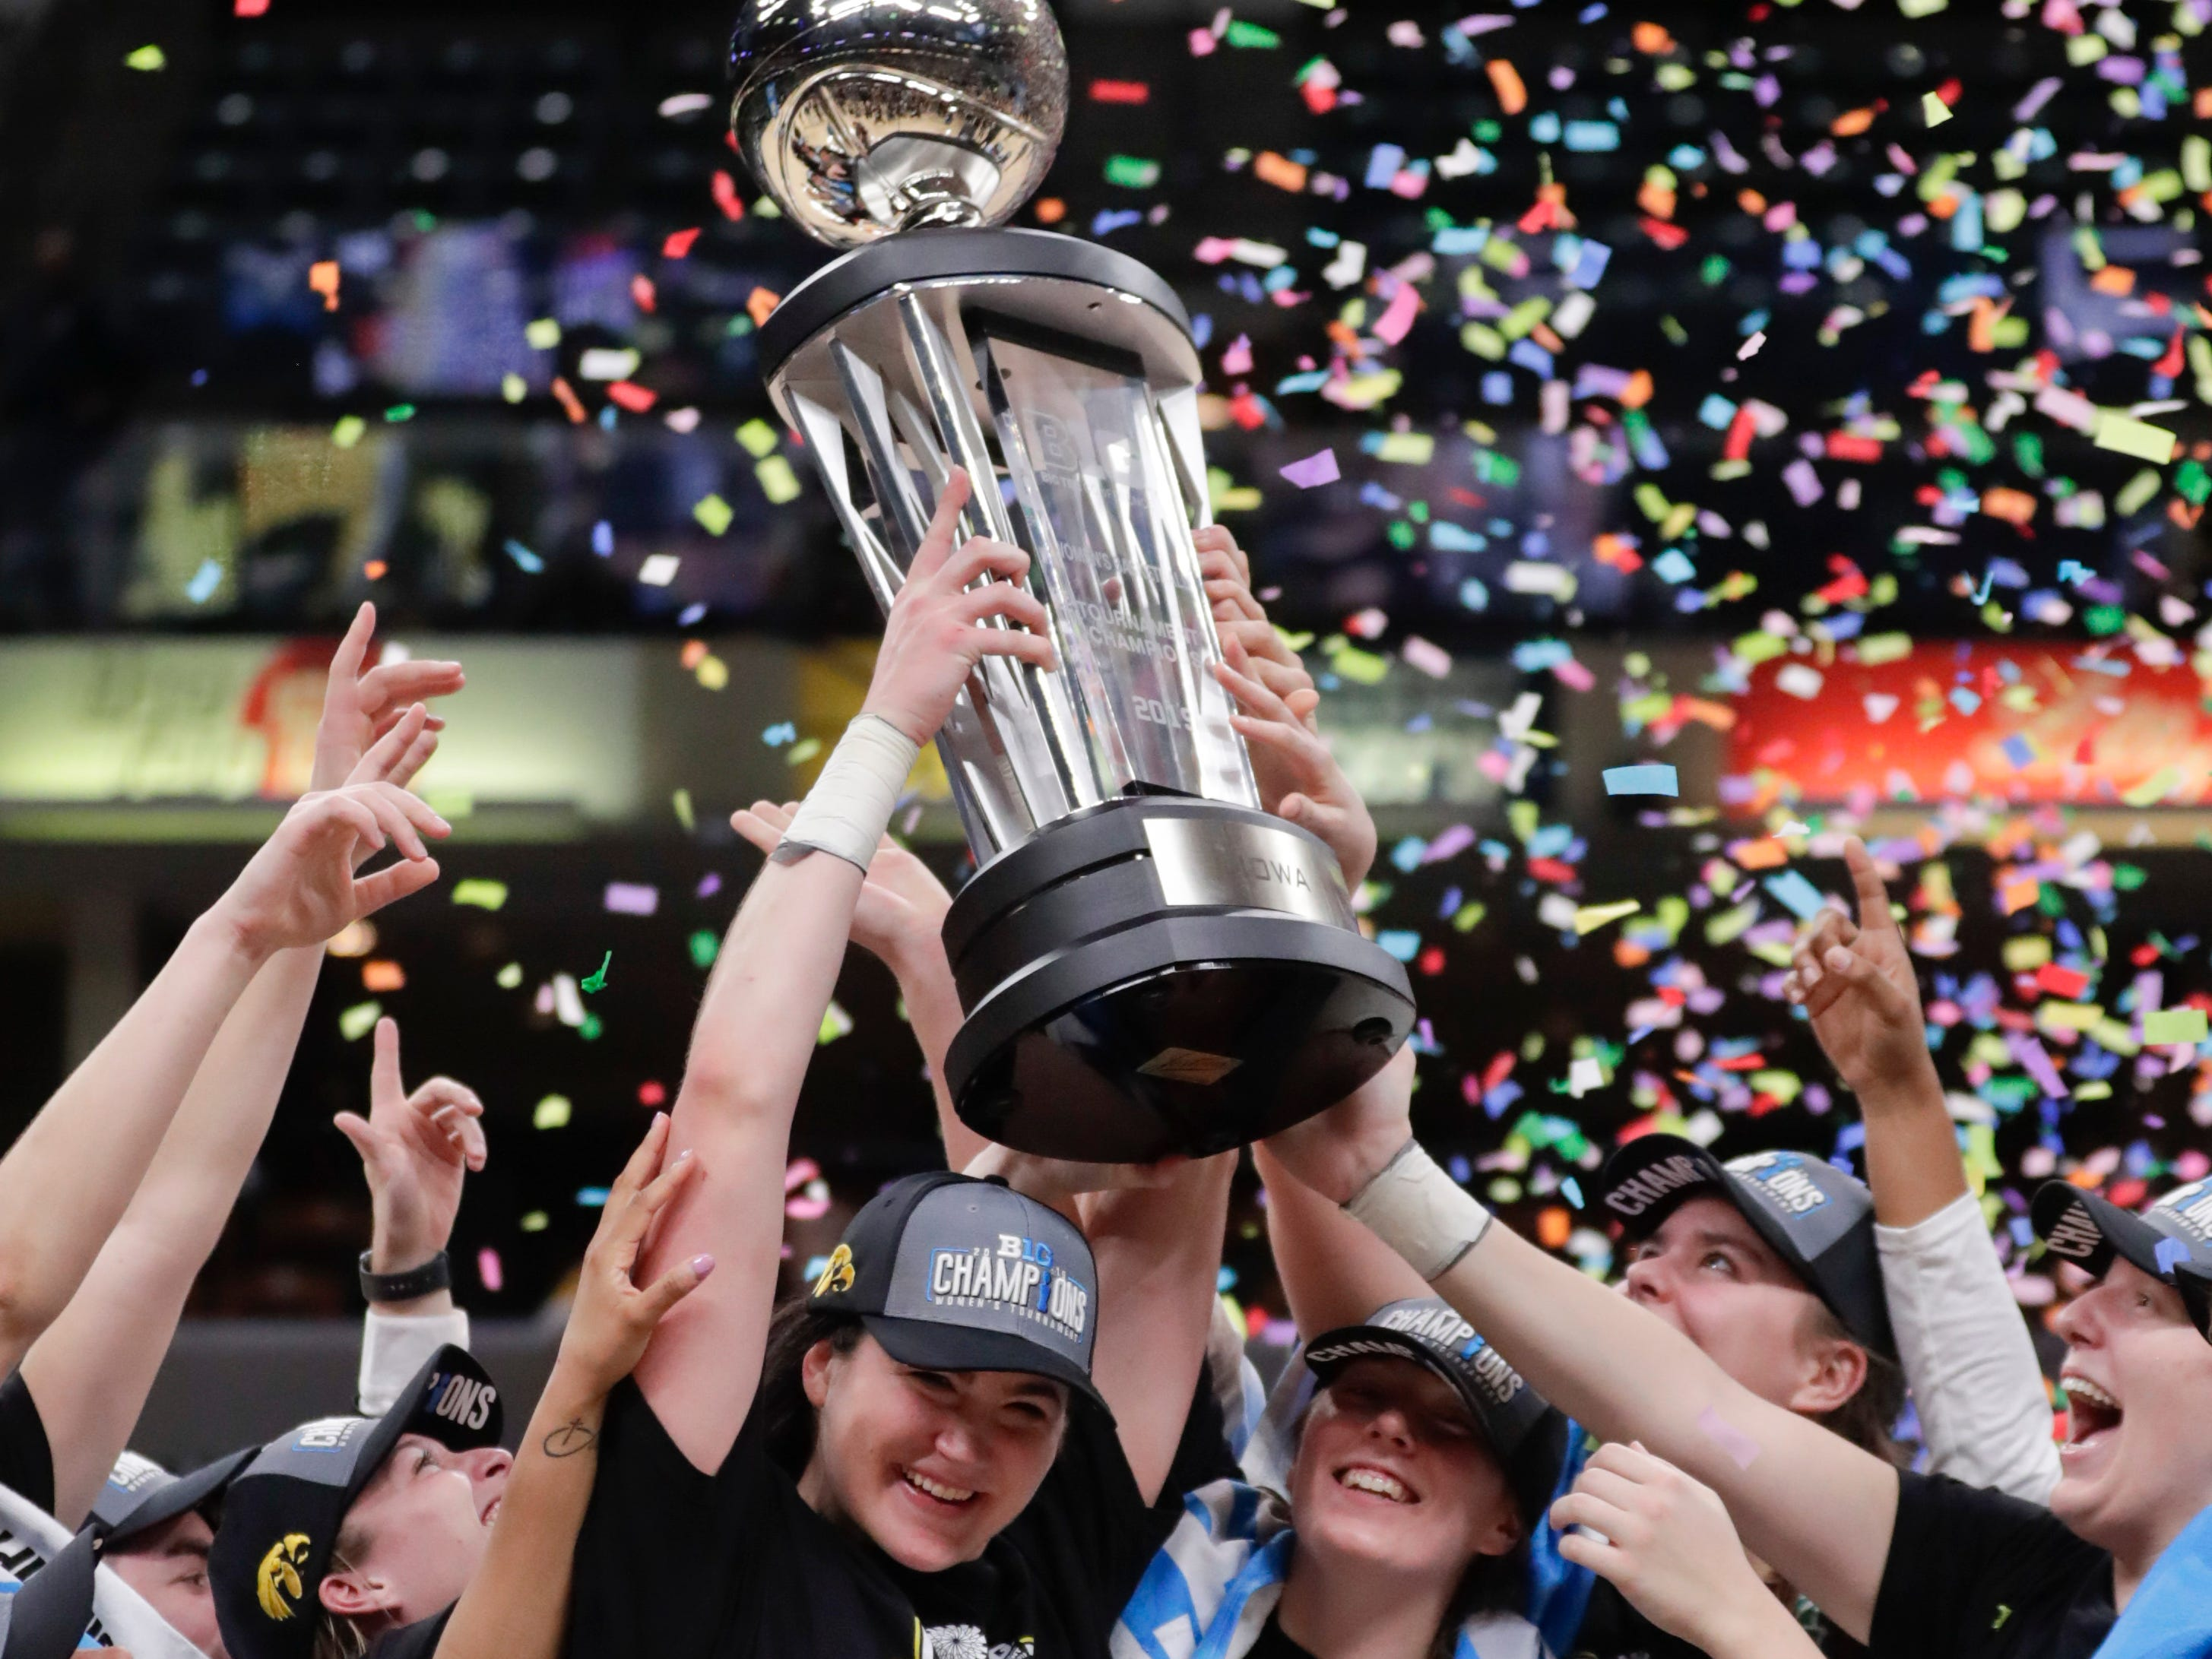 Iowa forward Megan Gustafson (10) celebrates with the trophy following an NCAA college basketball championship game at the Big Ten Conference tournament against the Maryland in Indianapolis, Sunday, March 10, 2019. Iowa defeated Maryland 90-76.